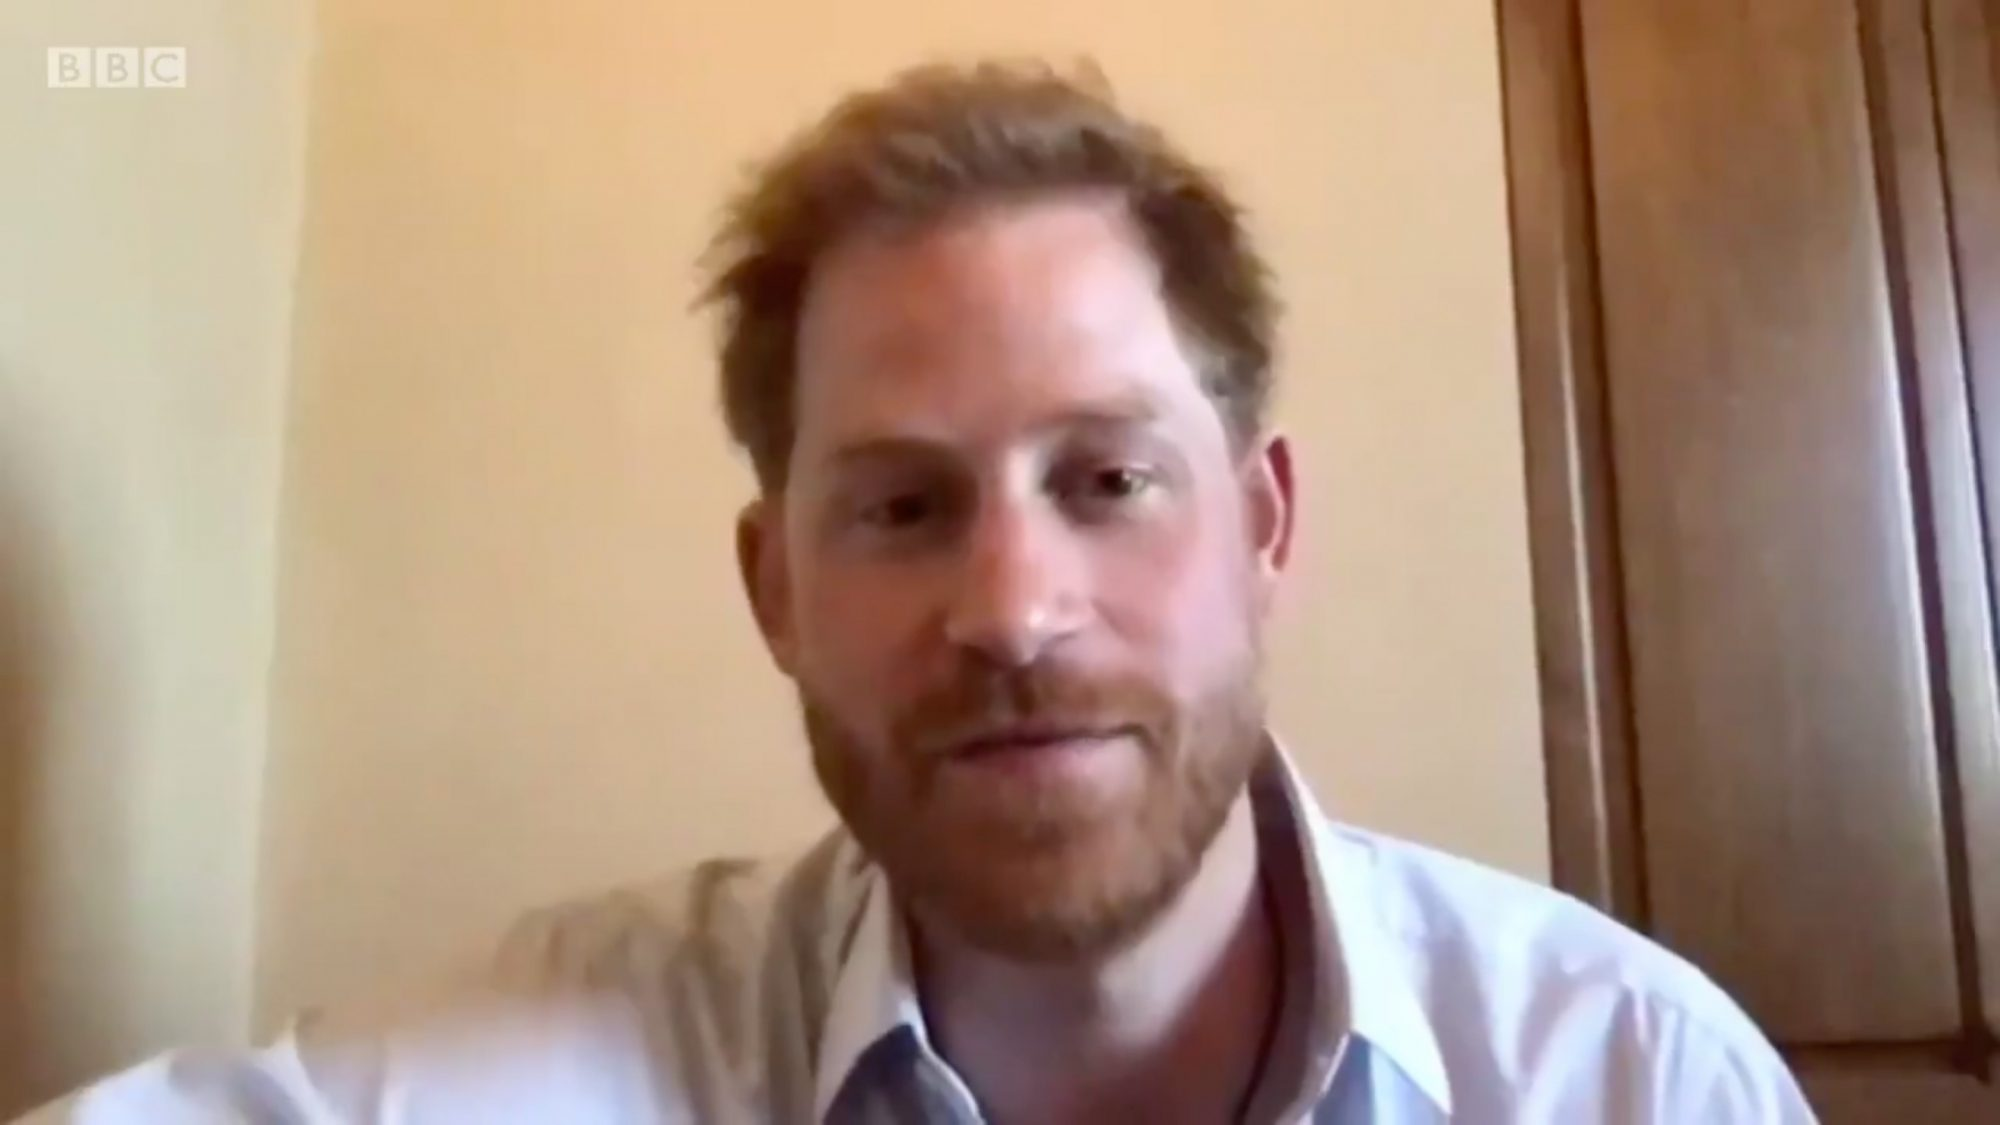 Prince Harry on BBC The One